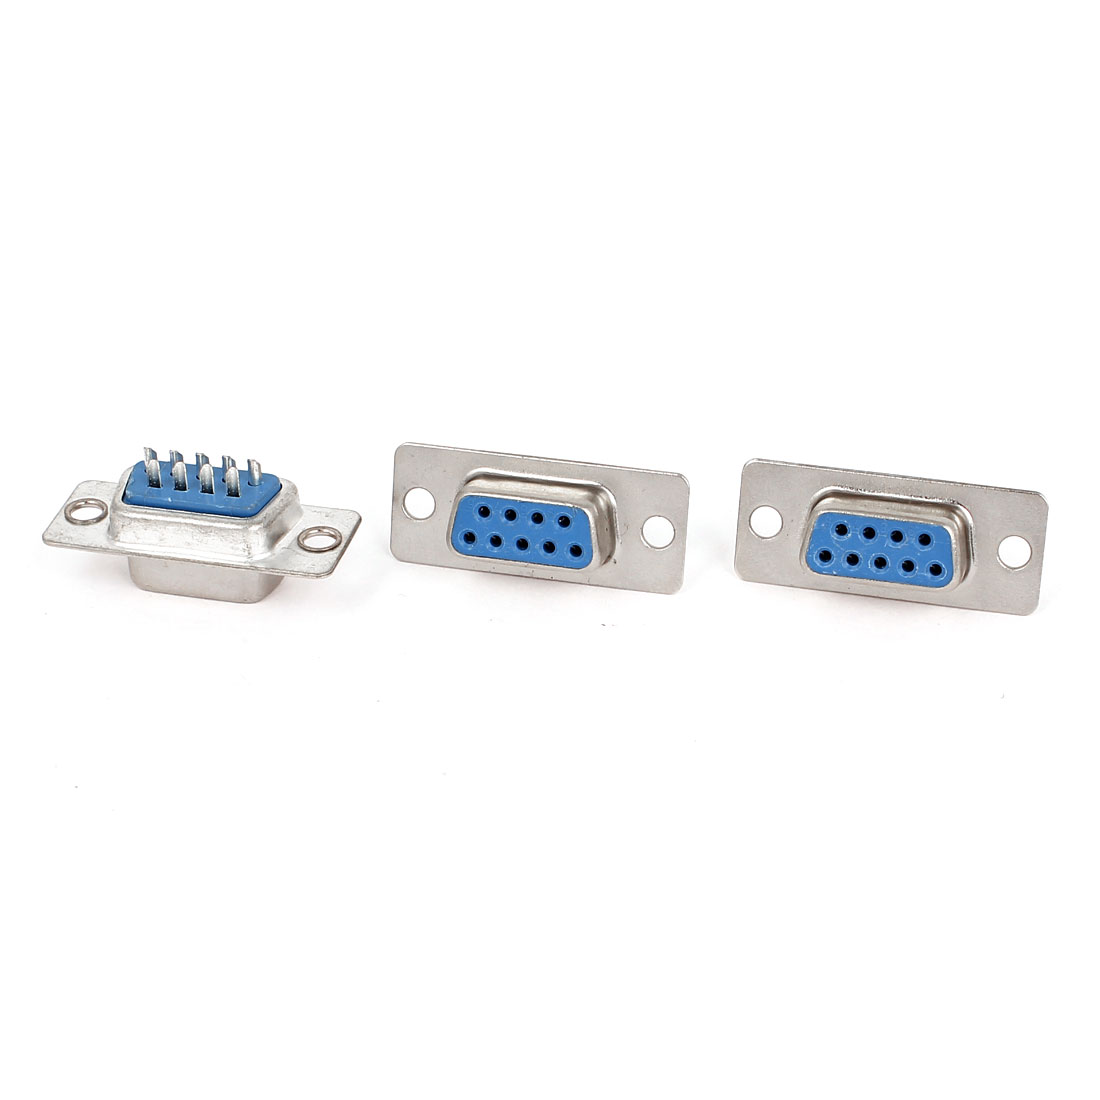 3pcs RS232 DB9 9 Pin Female Port DIP Mount VGA Socket Connector Adapter